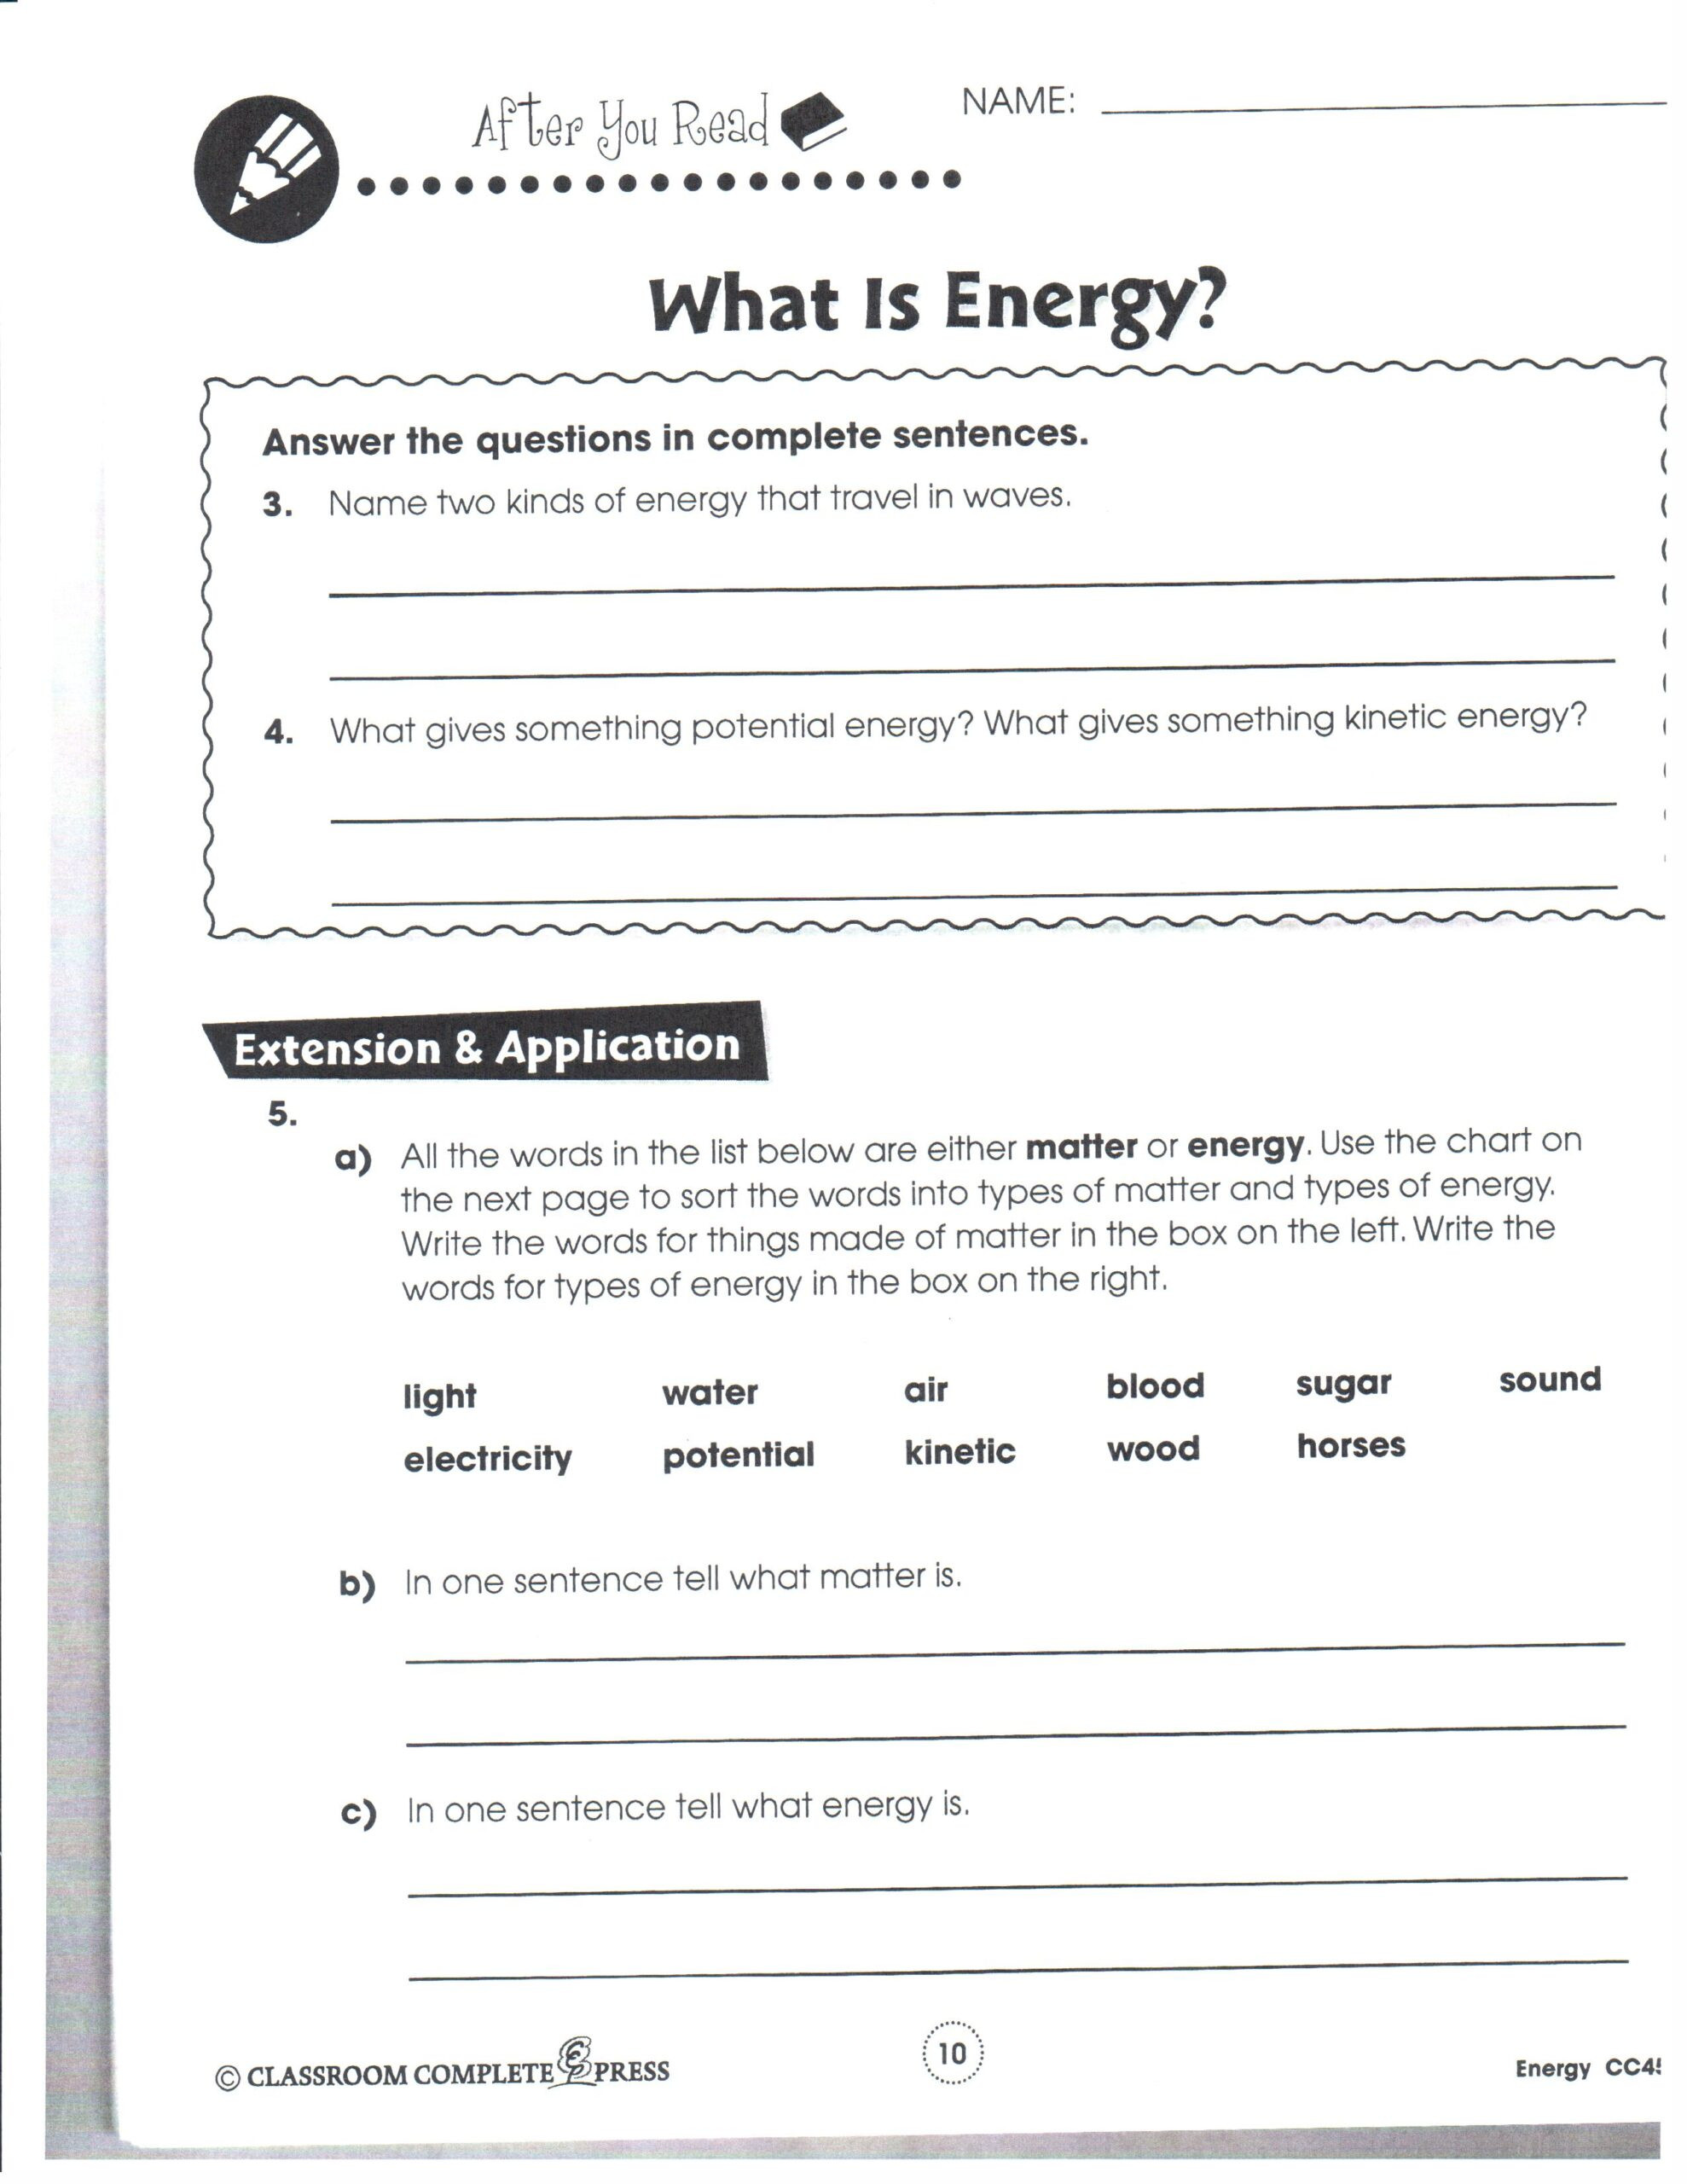 Science Worksheets for 8th Grade Physical Science January Mrs Garchow Classroom 8th